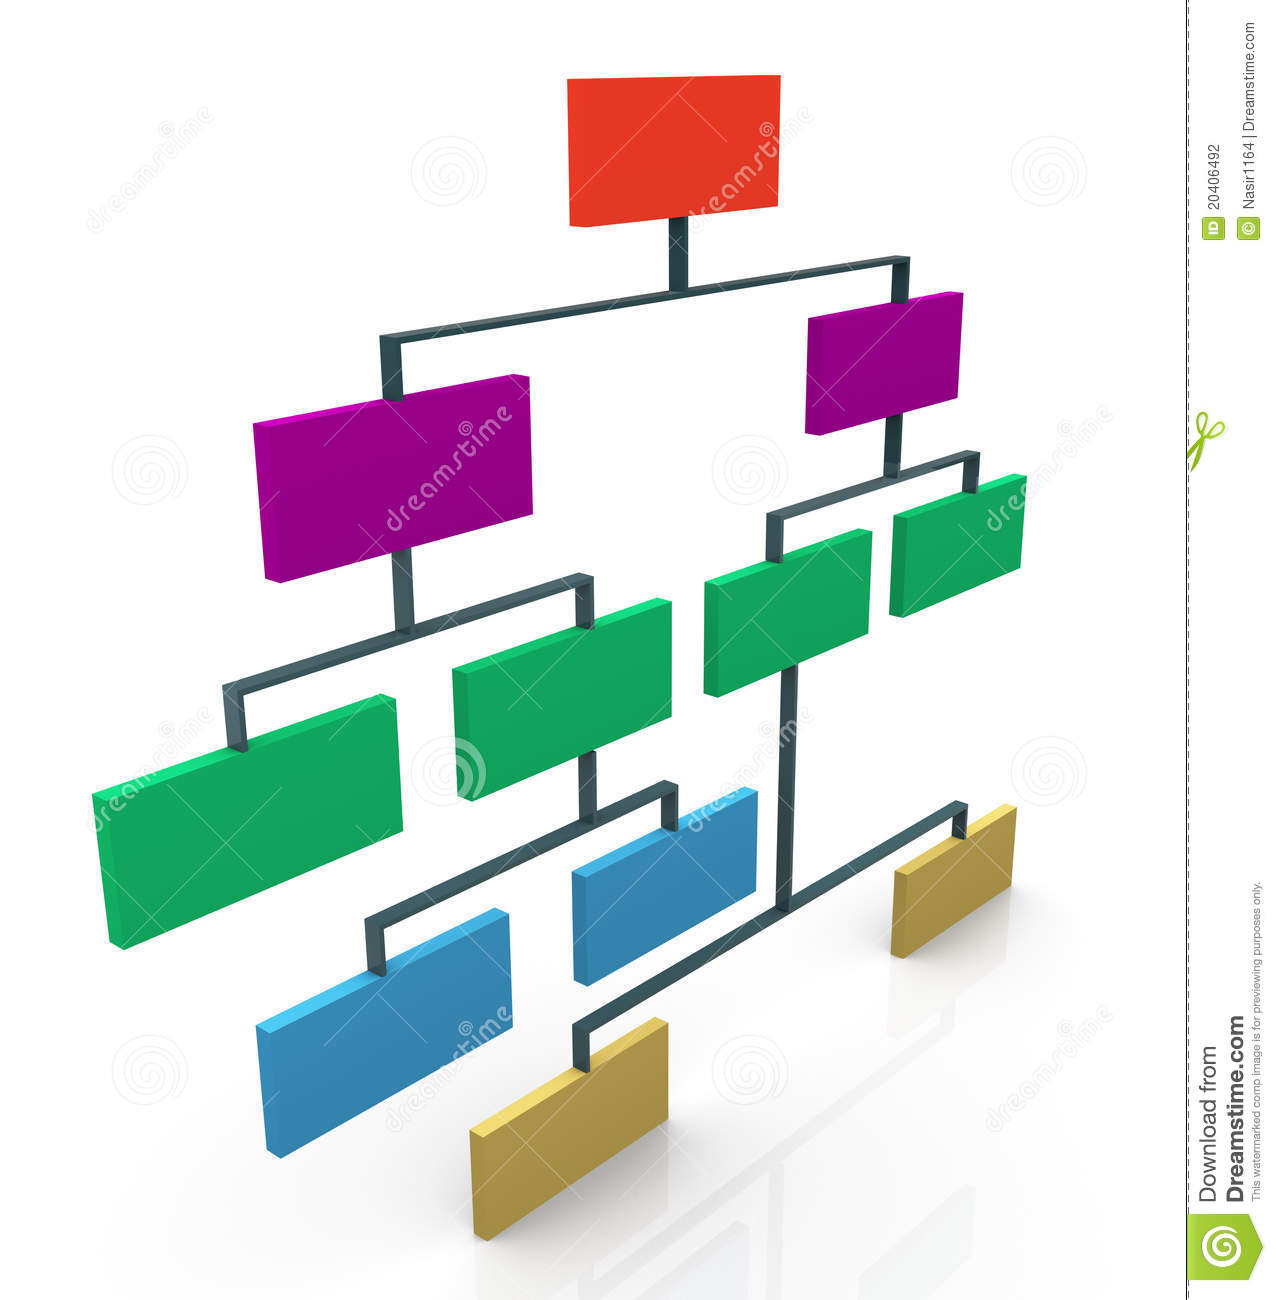 3d Organizational Chart Stock Photography - Image: 20406492